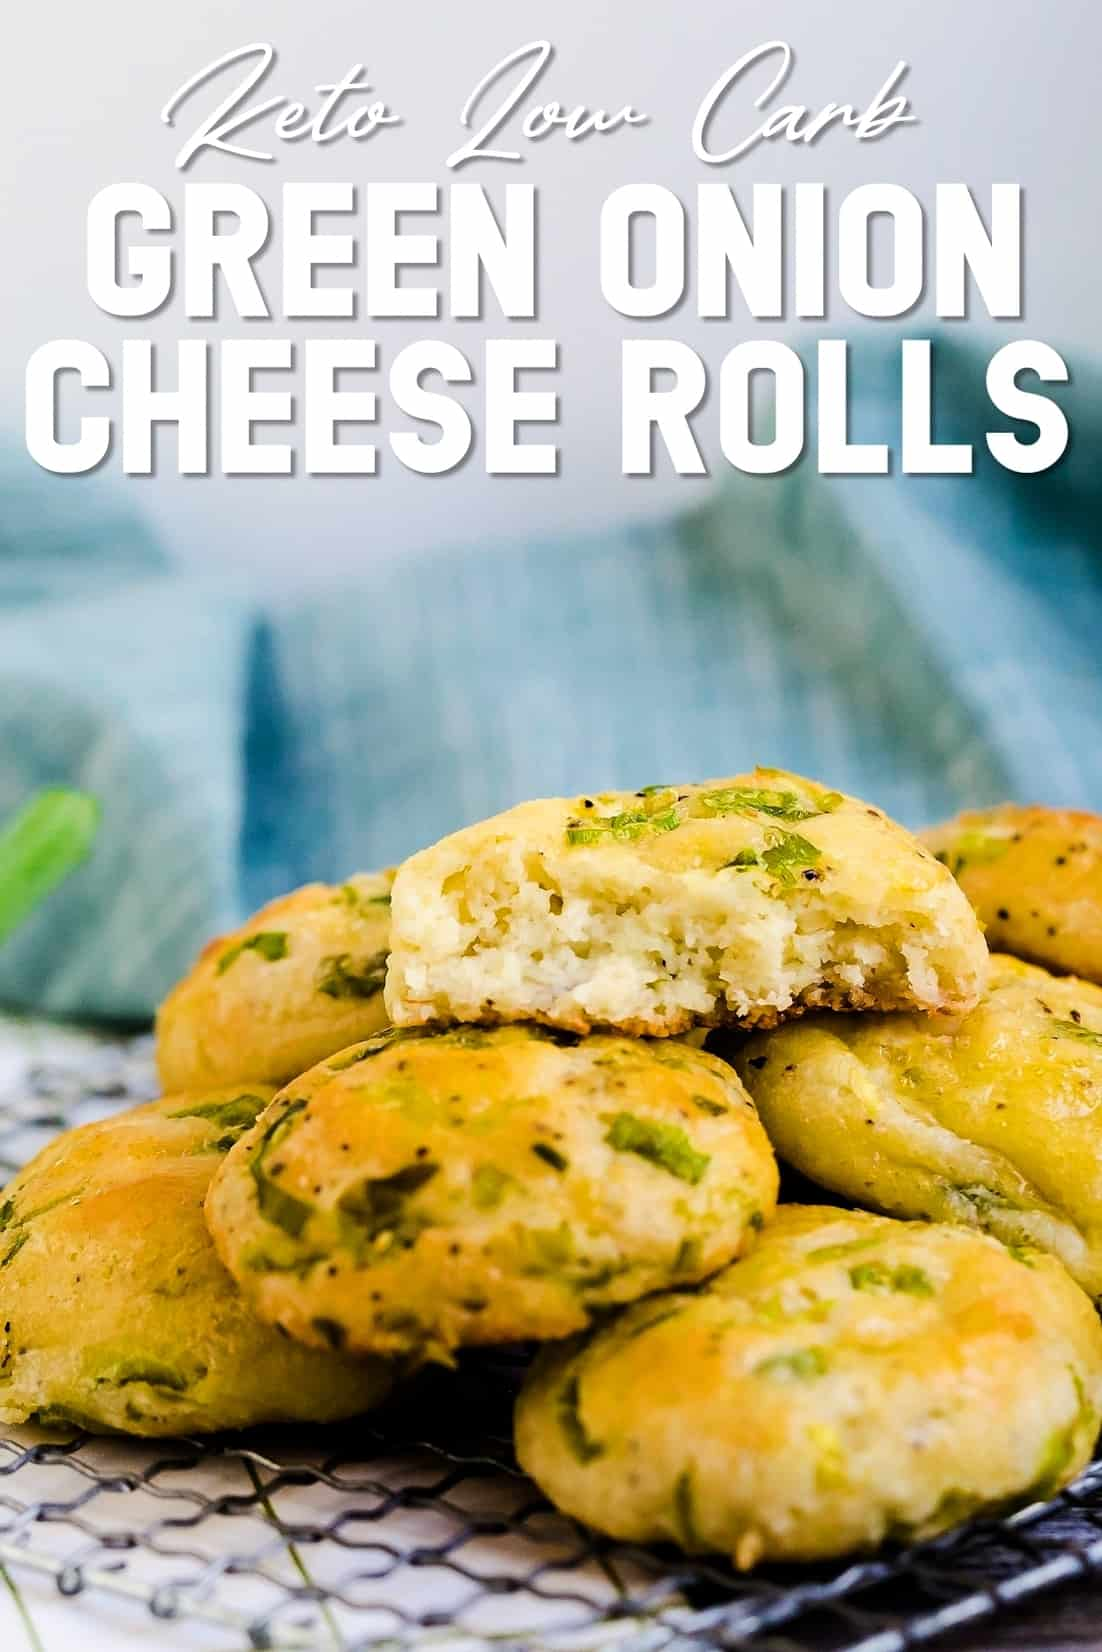 Keto Low Carb Green Onion Cheese Rolls